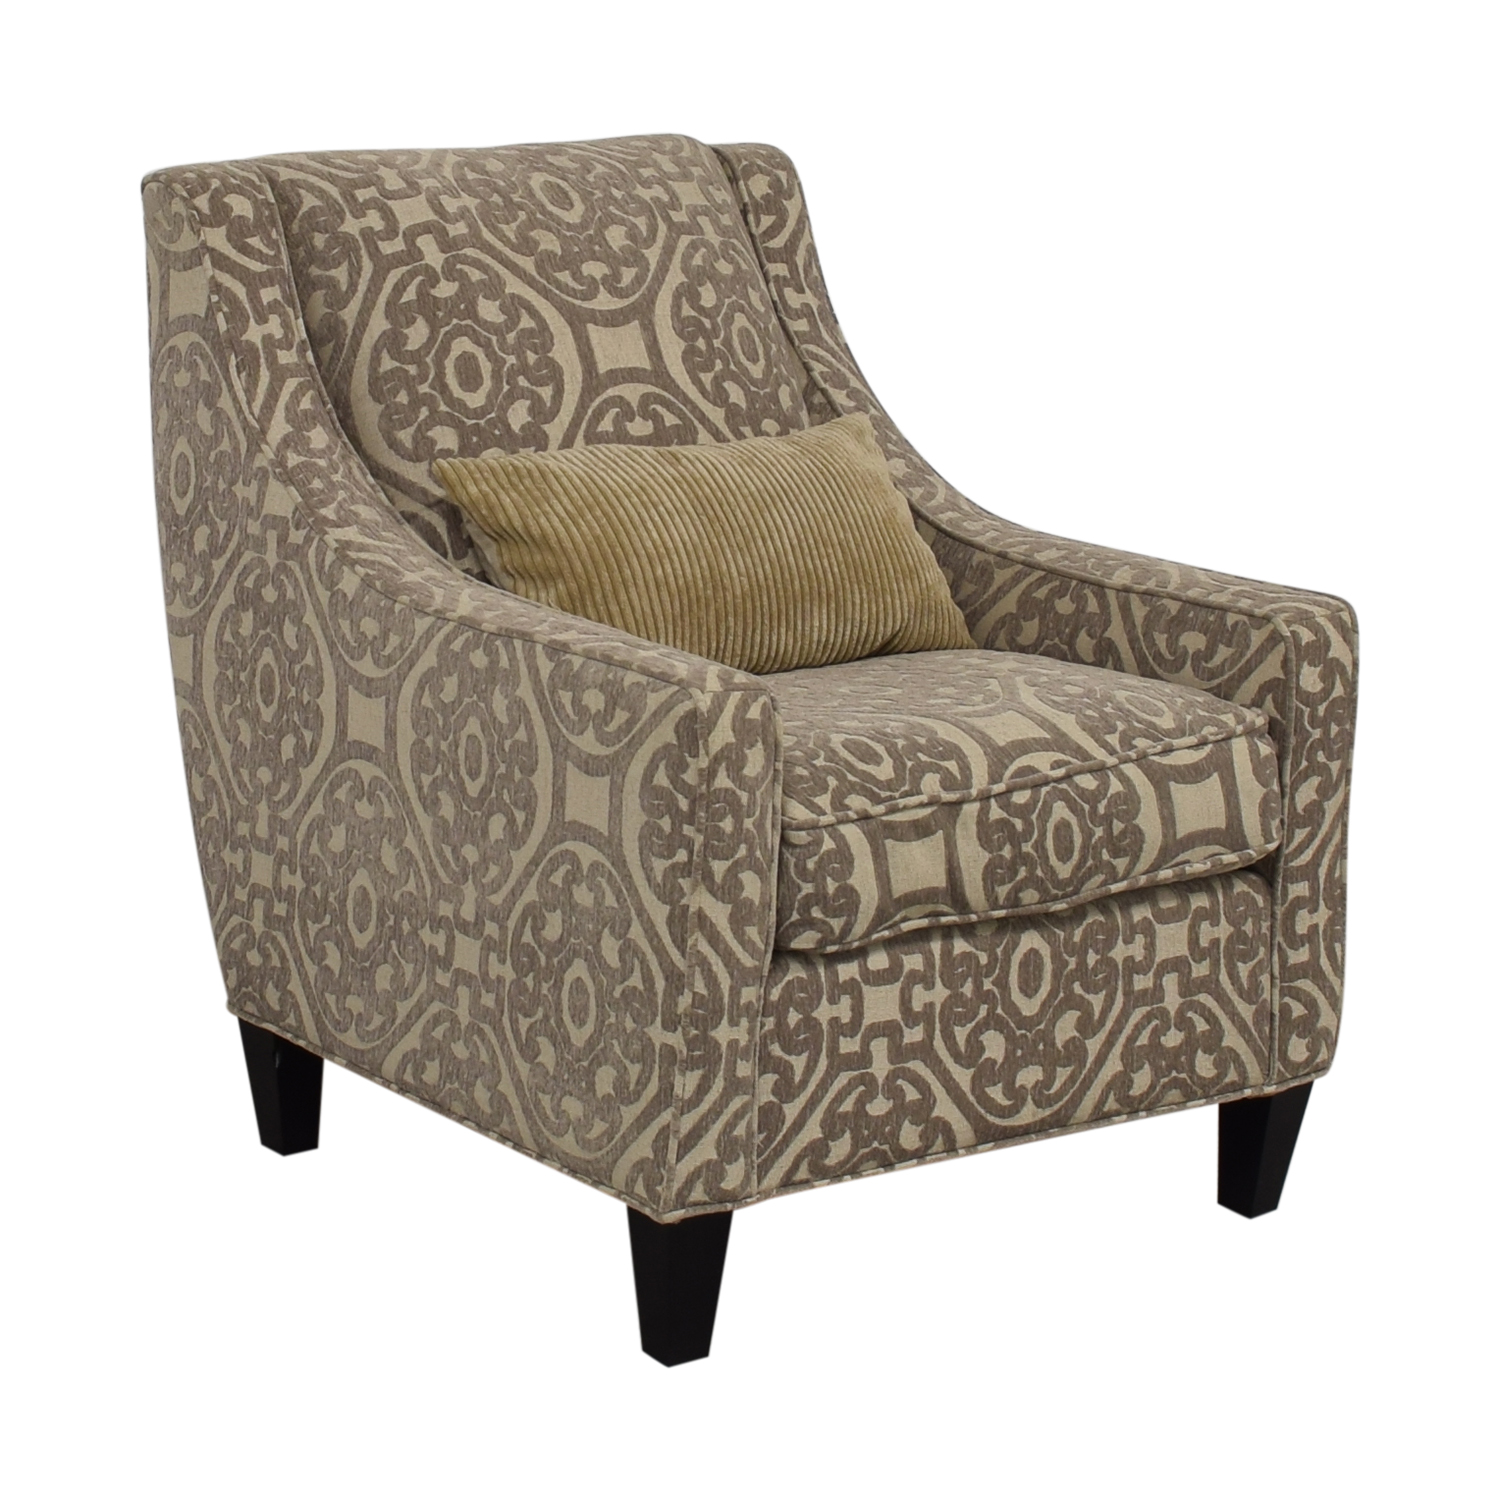 Raymour And Flanigan Chairs: Raymour & Flanigan Raymour & Flanigan Cindy